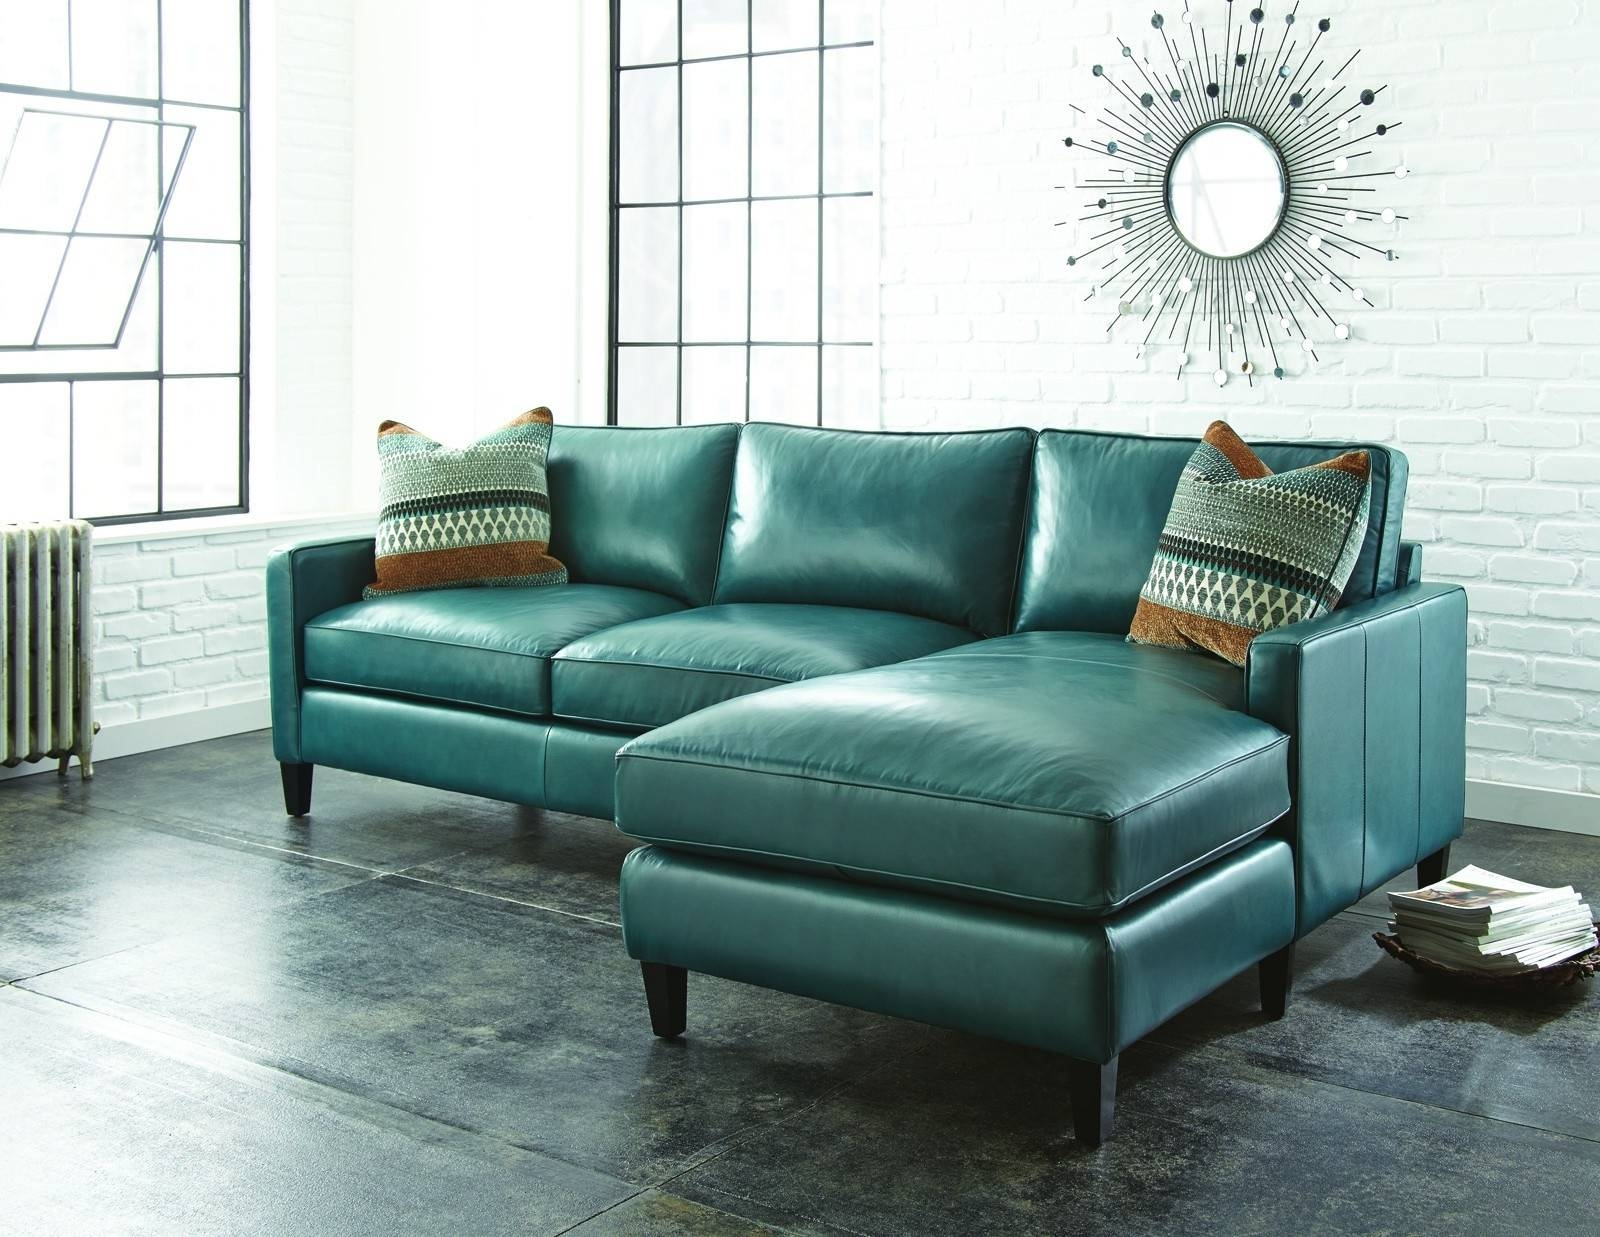 30 The Best Sofas and Sectionals